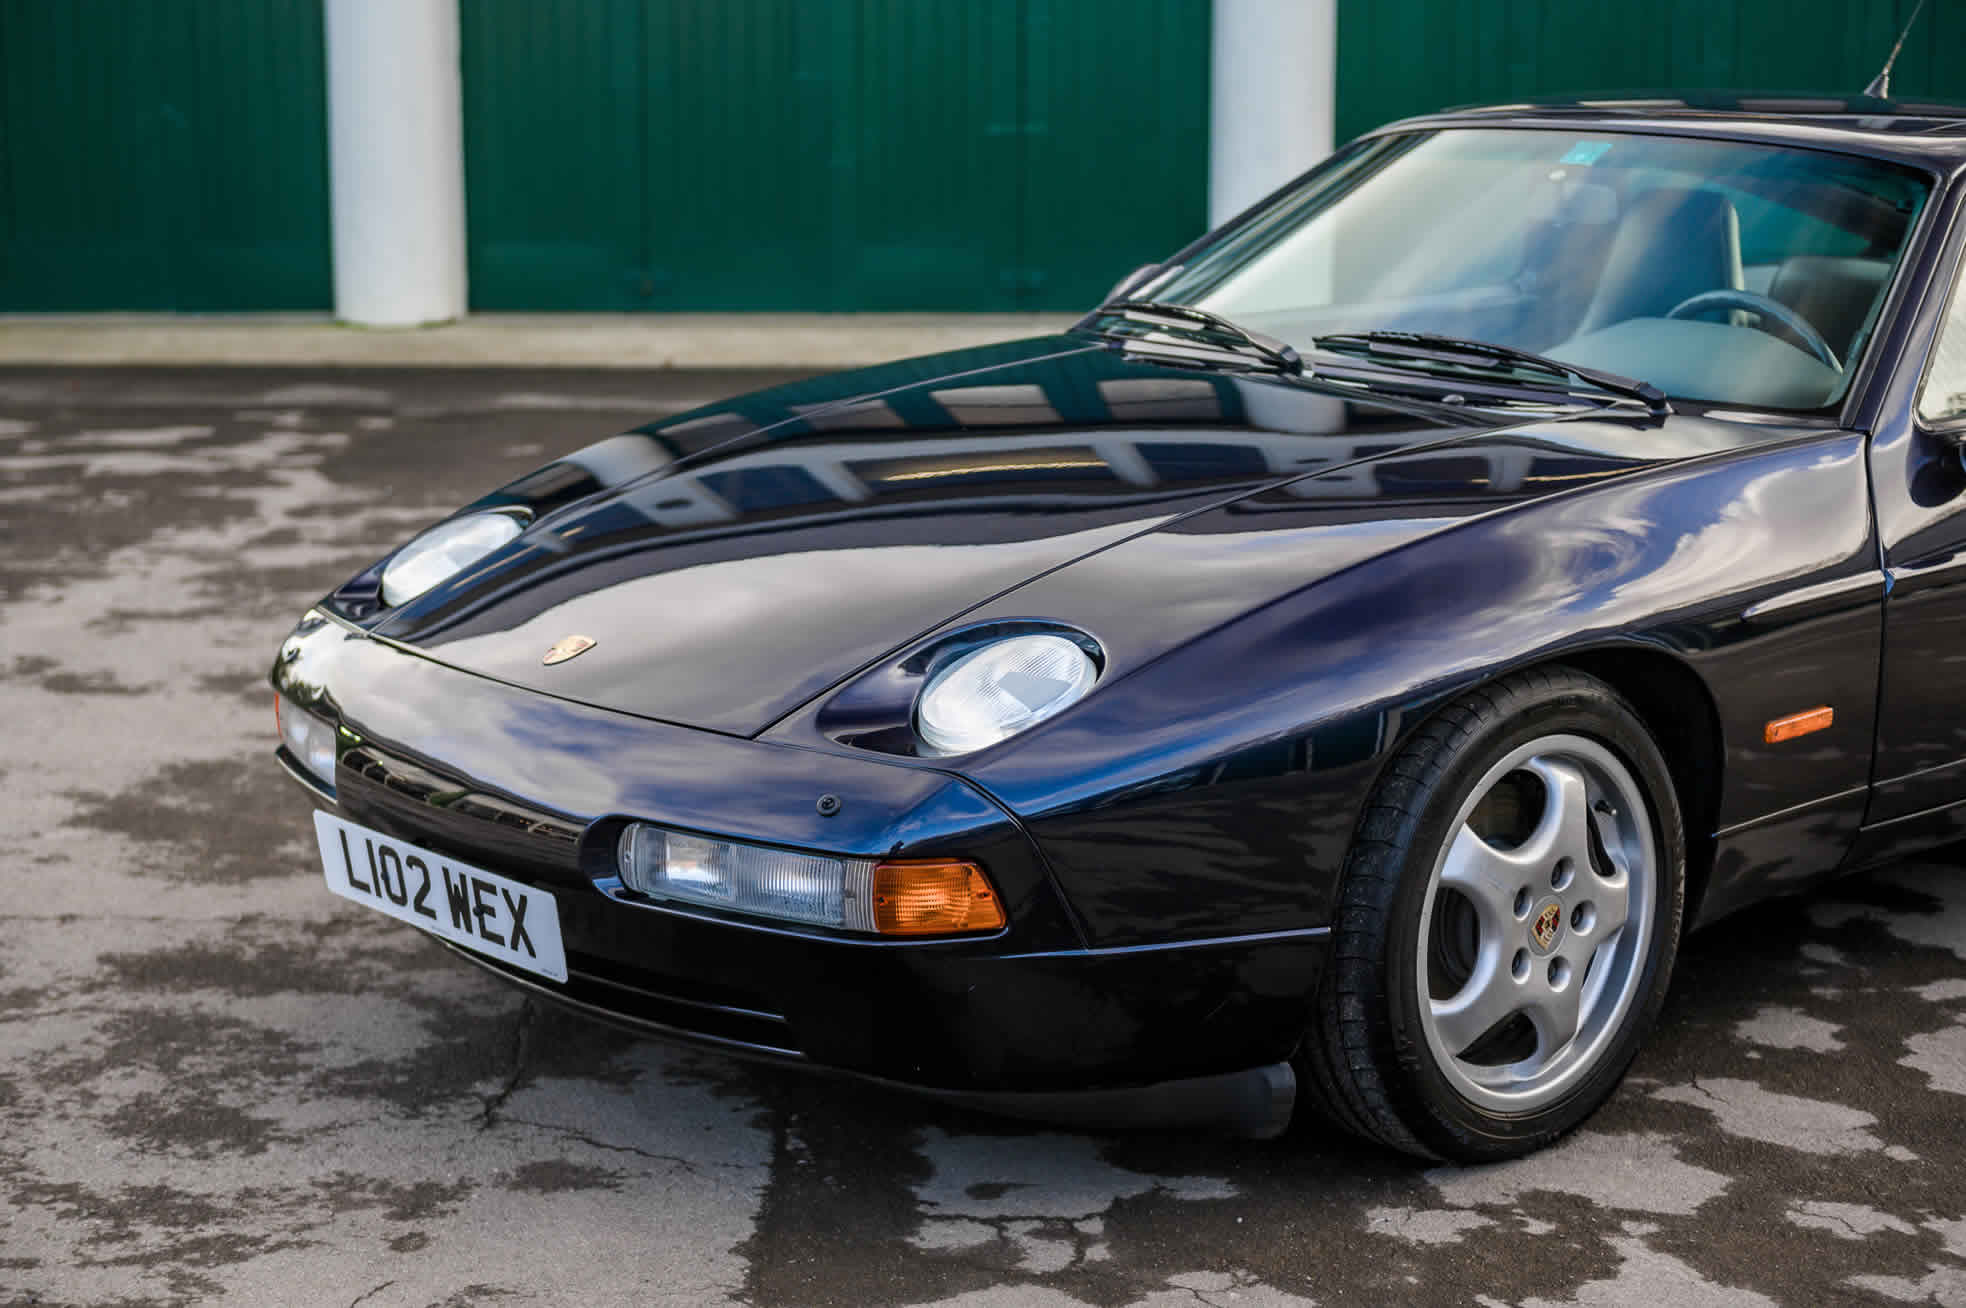 For Sale, 1992 Porsche 928 GTS, Sports Purpose Porsche Specialists, front view